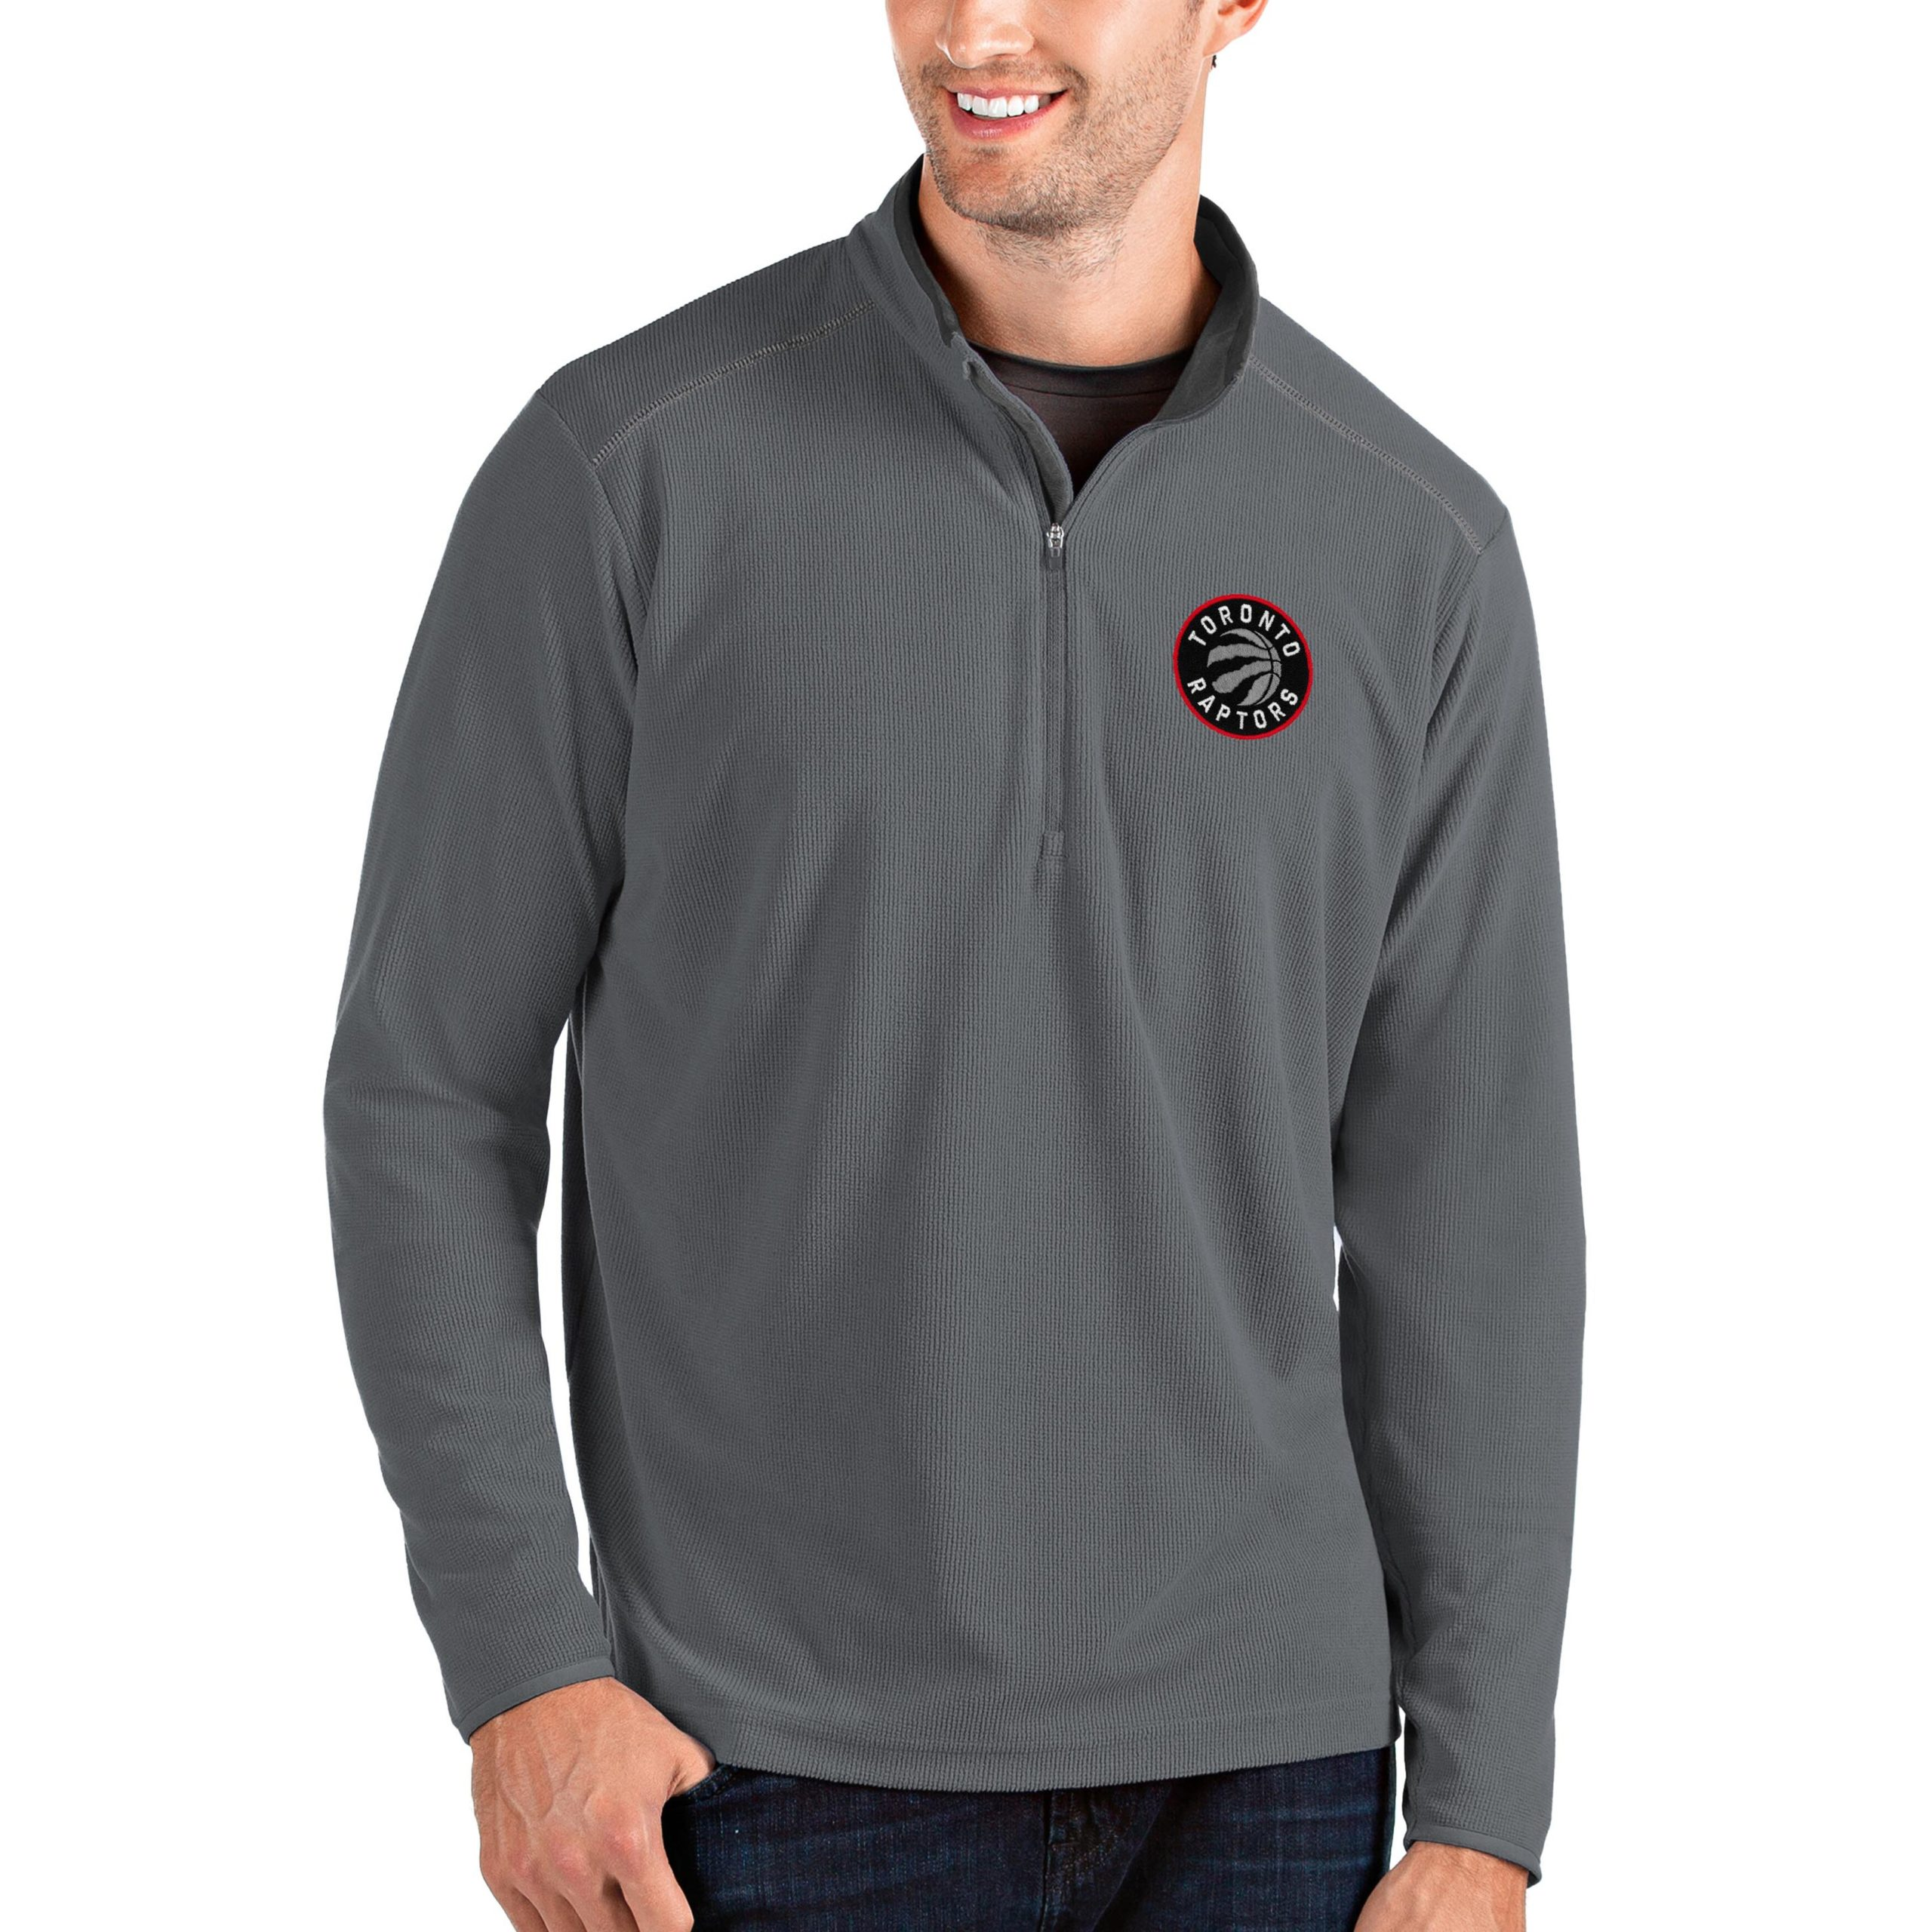 Toronto Raptors Antigua Big & Tall Glacier Quarter-Zip Pullover Jacket - Gray/Gray